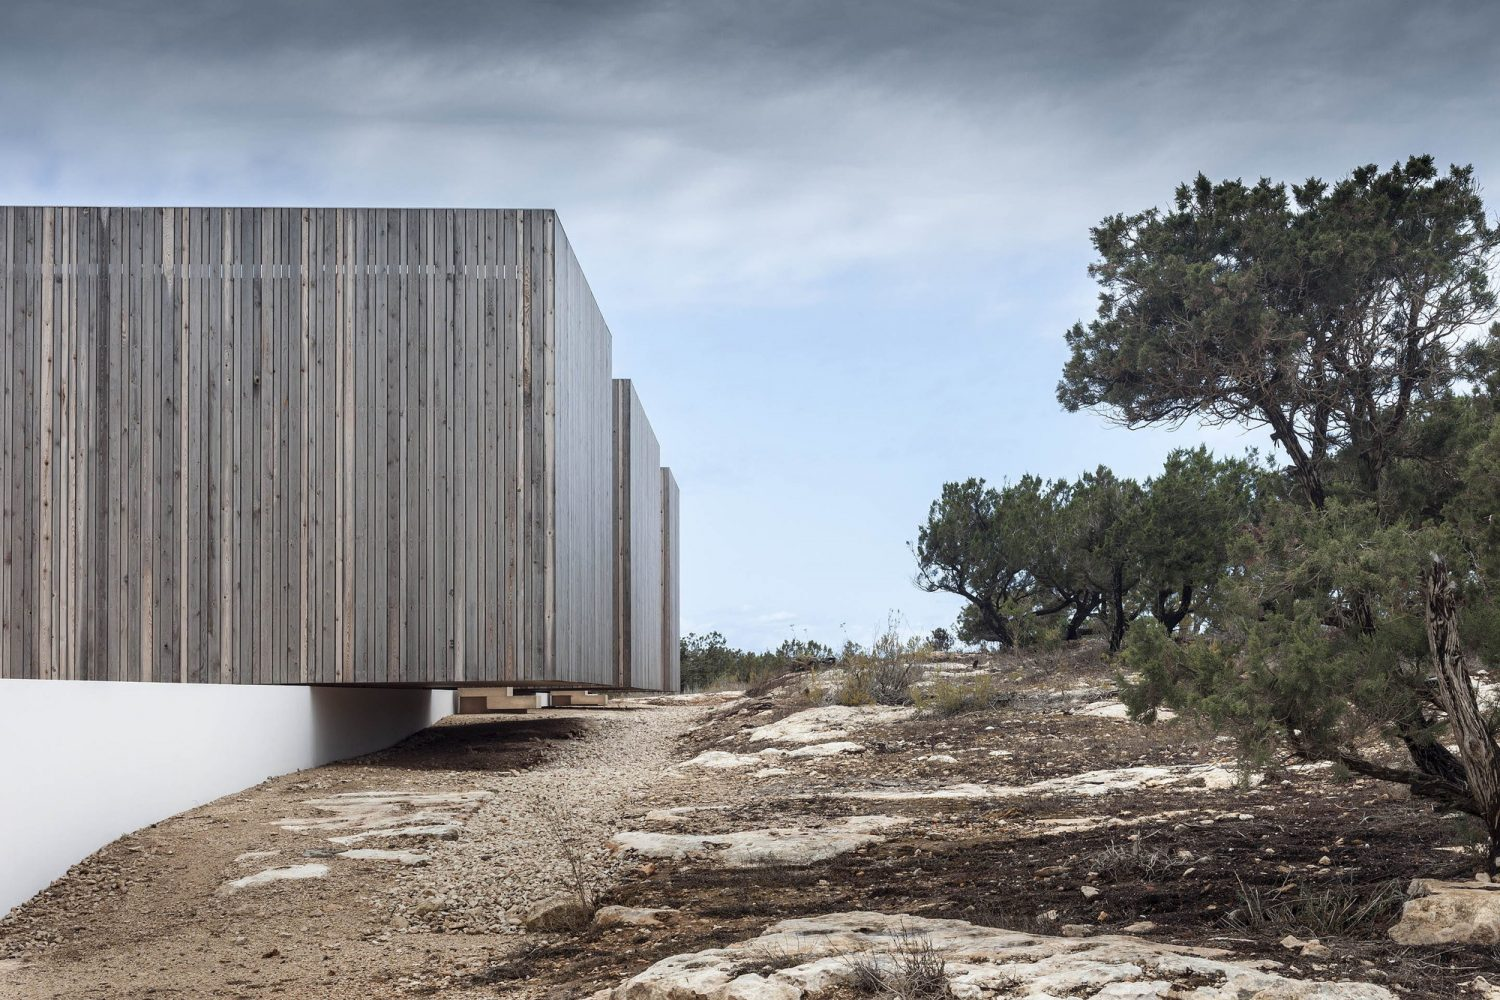 House in Formentera Island by Marià Castelló Martínez